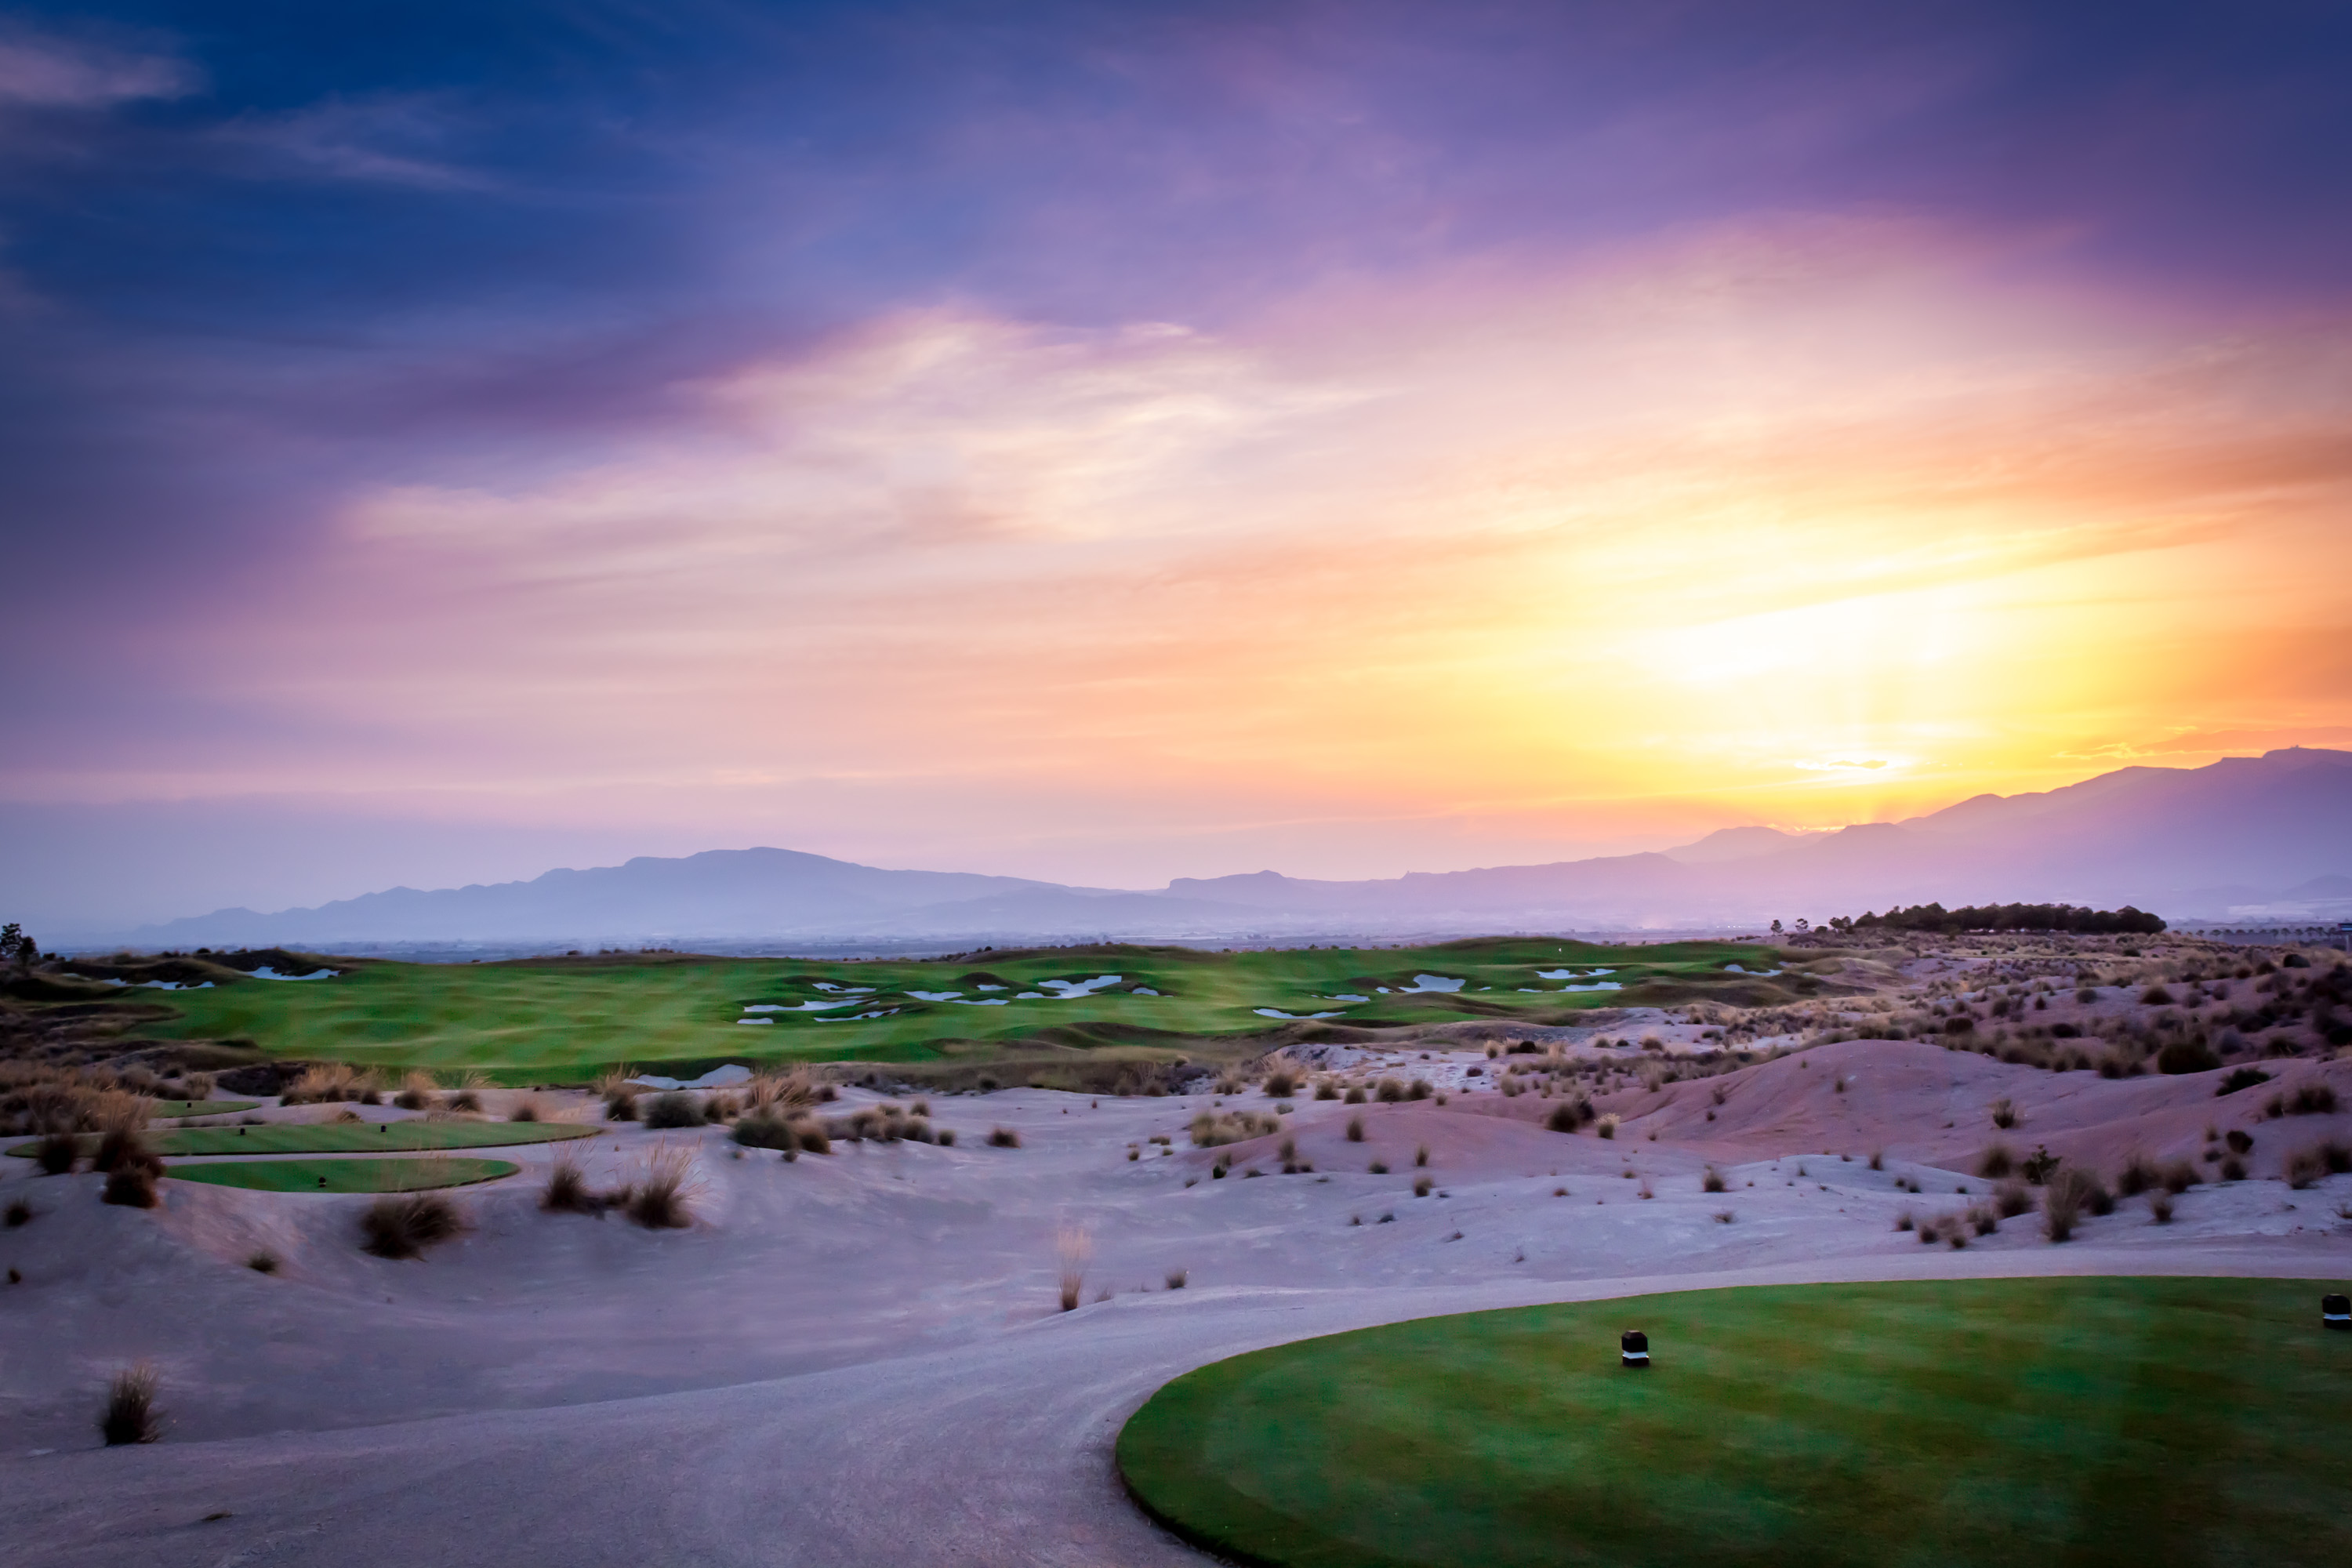 Stunning sunset over Alhama Signature golf course.